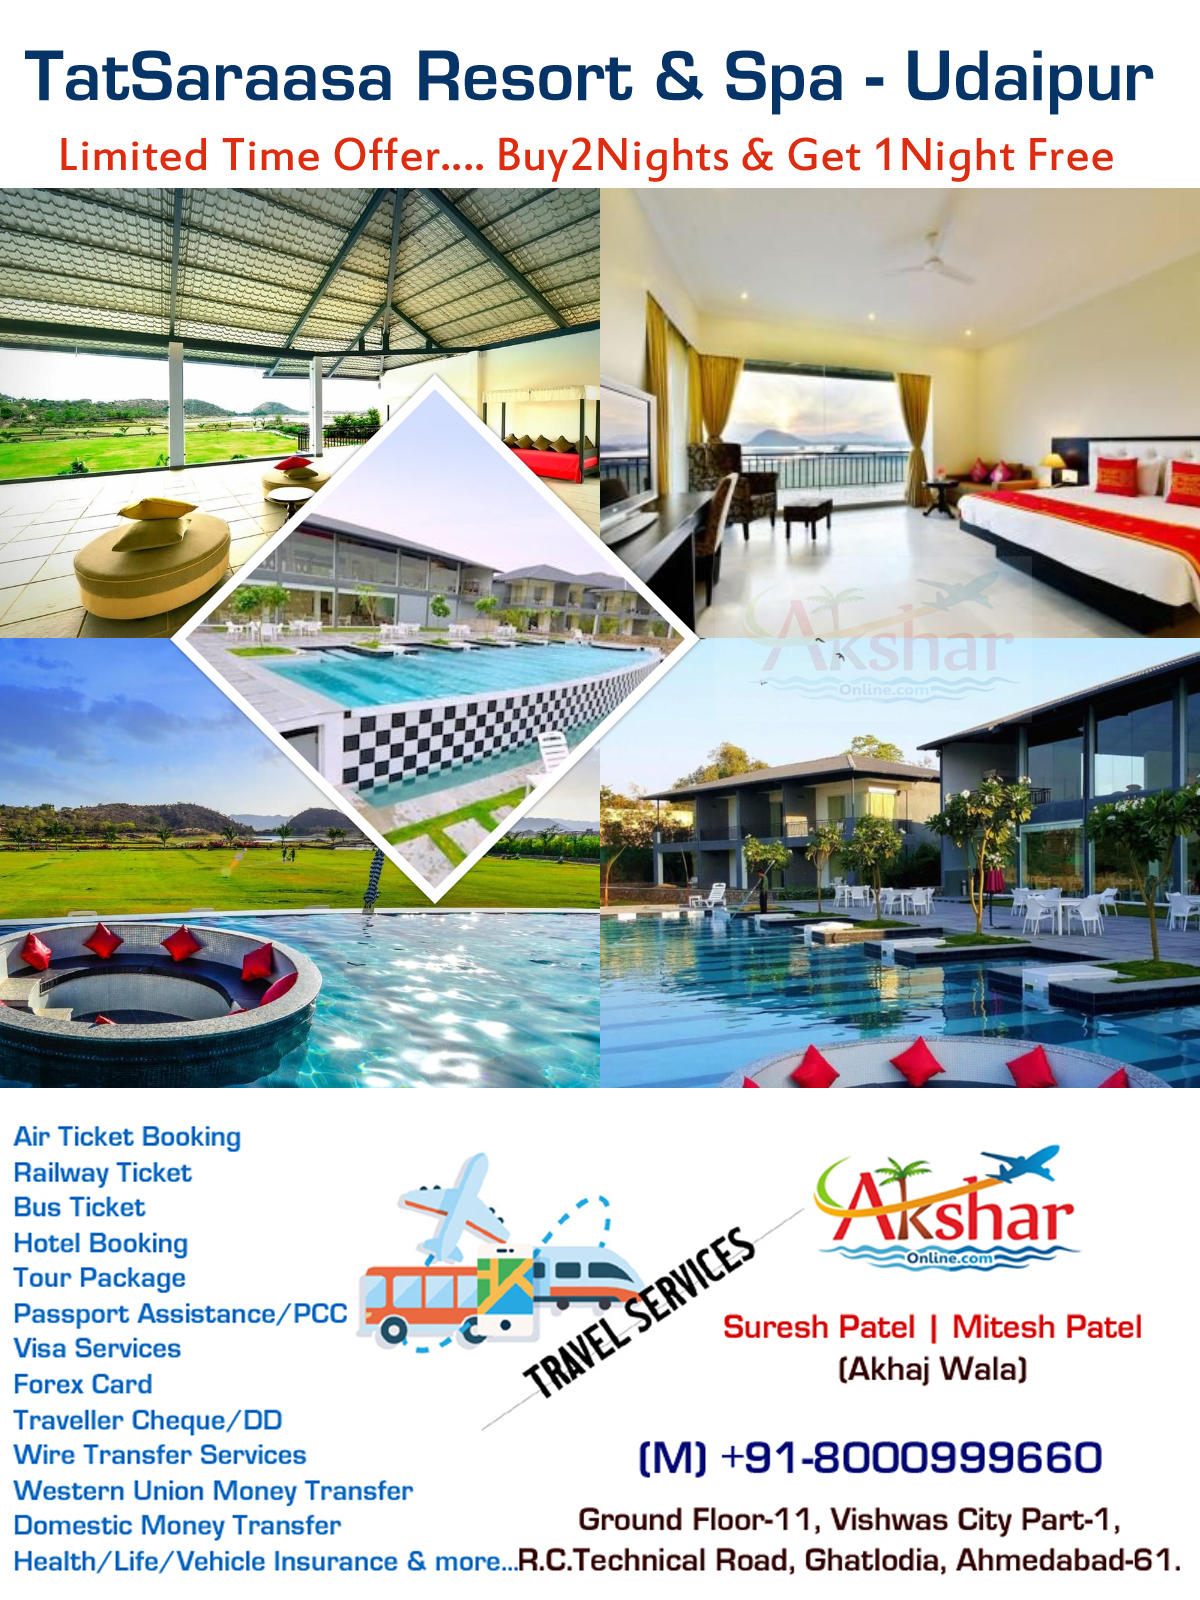 LIMITED OFFER OF TATSARAASA RESORT AND SPA UDAIPUR  Package price 16000/- for two night with breakfast and dinner, 2  Evening High Tea with Snacks, 3rd night complimentary on MAP.   This offer is valid for Limited Period. PLEASE NOTE: 01 Child each room below 05 Years is complimentary. Other Inclusions:. v  In Room Tea Coffee Maker With Complimentary Replenishment Once Daily. v  Two Bottles Of Packed Drinking Water In Room Replenished Once Daily. v  Free Wi-Fi, Offering an outdoor pool and a spa and wellness centre, TatSaraasa Resort & Spa is located in scenic and historic locales of Udaipur.  The accommodation will provide you with a TV and air conditioning. There is also an electric kettle. Featuring a shower, private bathroom also comes with a hairdryer and bathrobes. You can enjoy lake view from the room. Extras include a seating area, satellite channels and cable channels.  At TatSaraasa Resort & Spa, Udaipur you will find a garden. Other facilities offered at the property include a tour desk and luggage storage.  It is 11.7 km from City Palace and 13 km from Lake Pichola. This resort is 15 km away from Udaipur Bus Station and Udaipur Railway Station while it is 28 km from Maharana Pratap Airport.  The in-house restaurant serves multi-cuisine delicacies. Room service is available for limited number of hours.